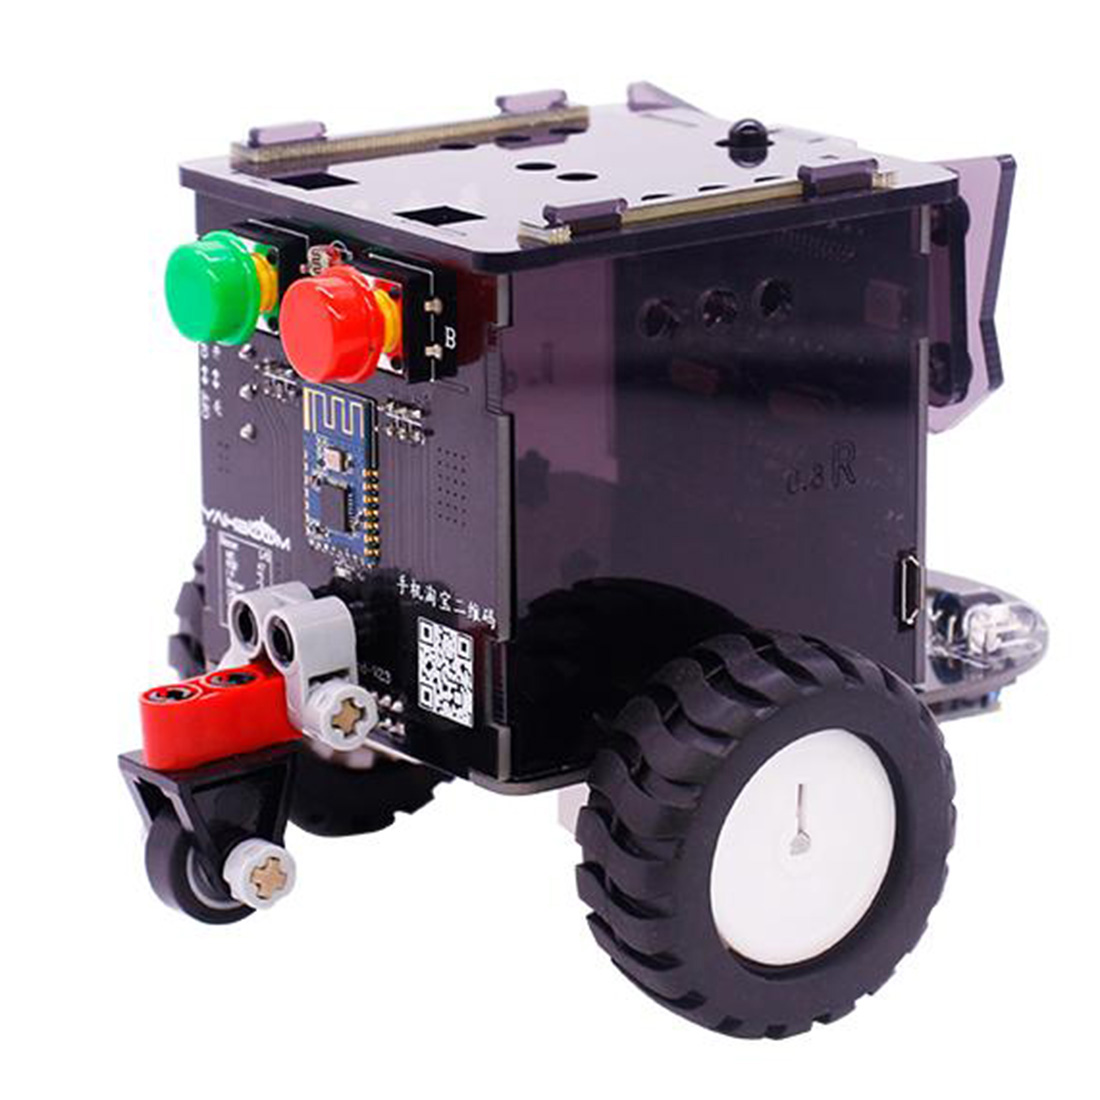 Standard Version Omibox Scratch Programmable Robot Car Kit Programable Toys For Men Kids Gift